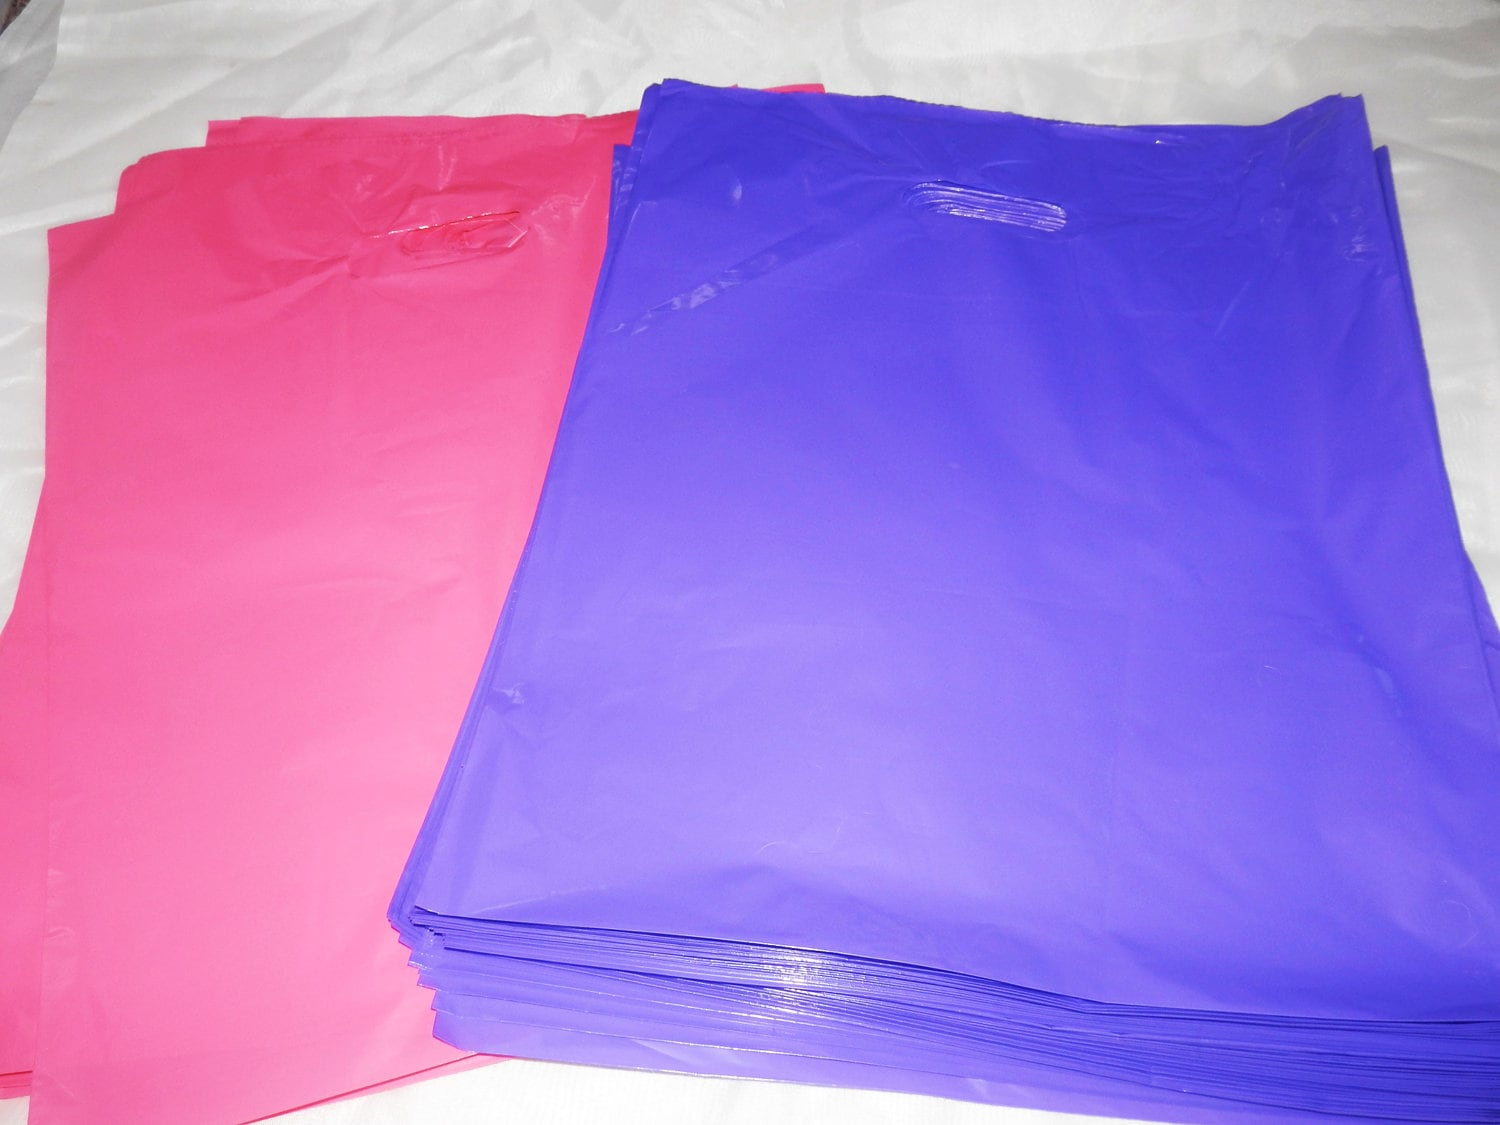 Details about  /100 12x15 Glossy Pink and Purple Plastic Merchandise Bags w//Handles